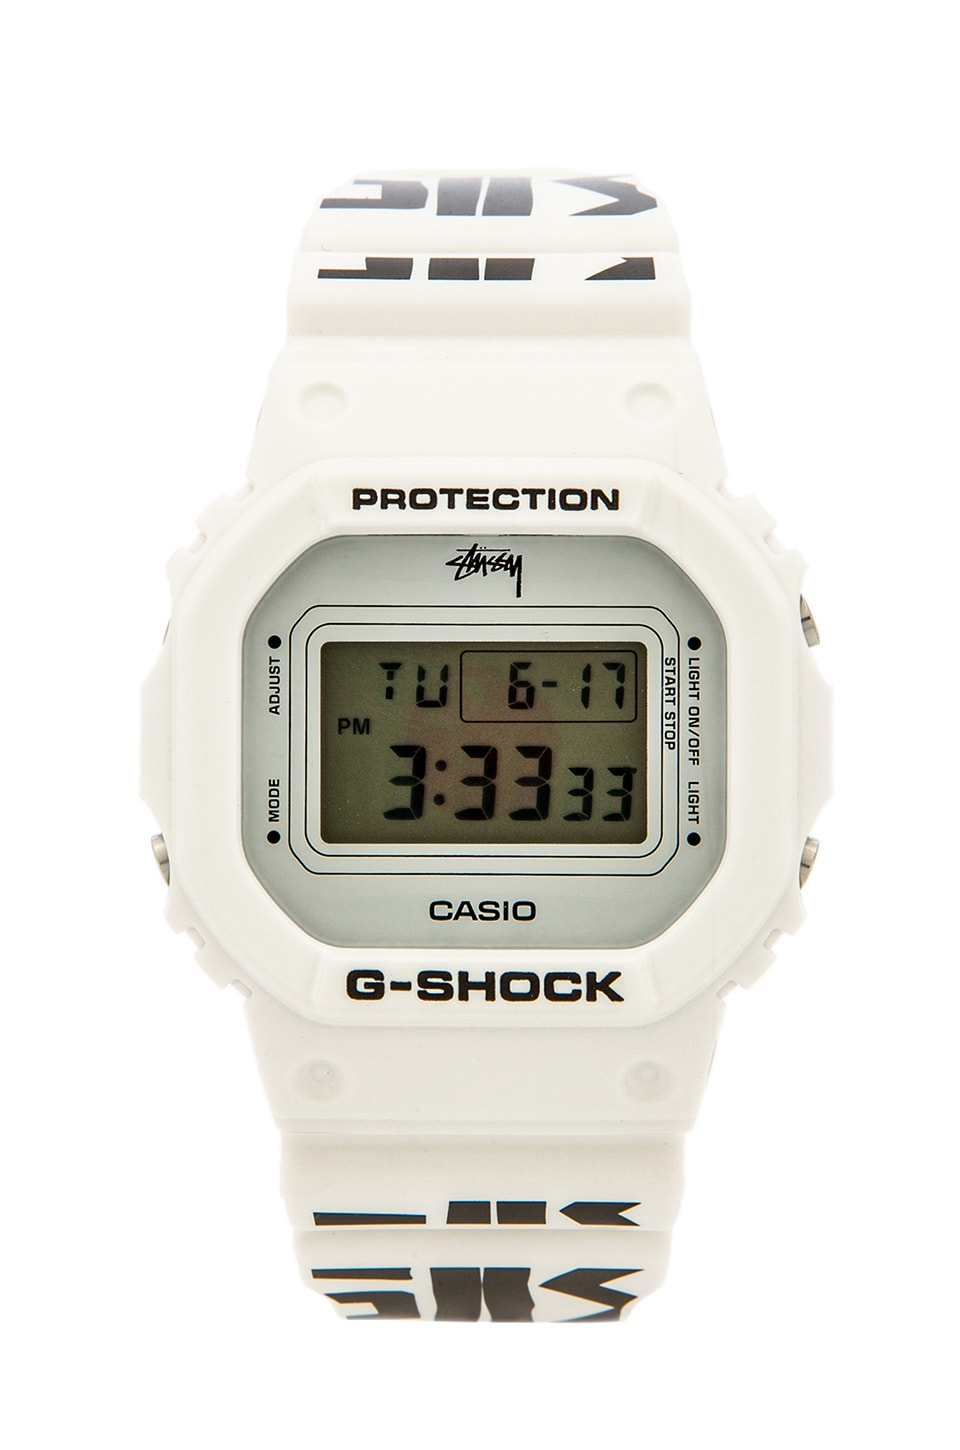 Stussy x G Shock World Cup Watch in White